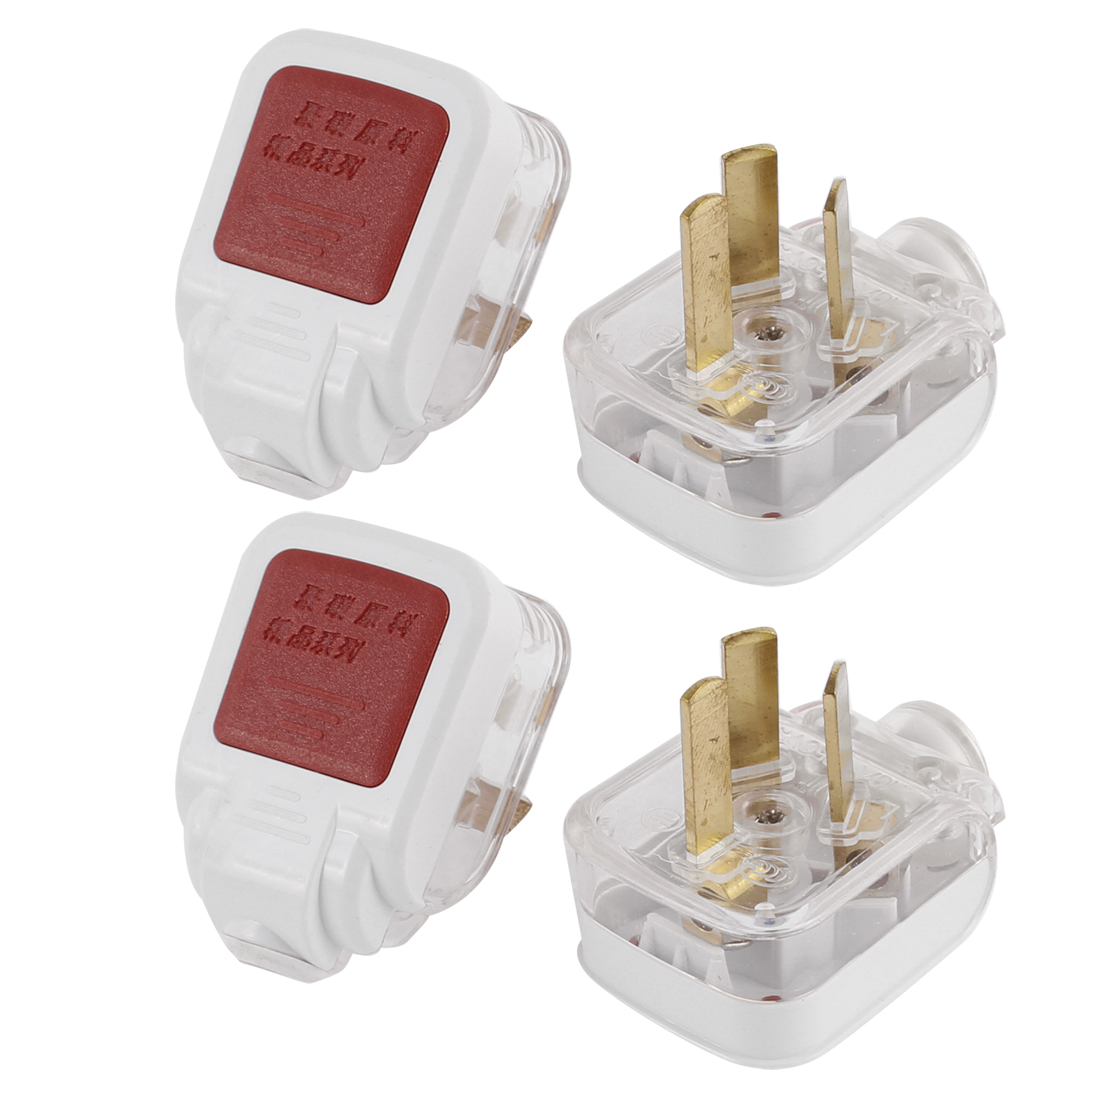 AU Plug AC 250V 10A Rewirable Power Cord Connector Adapter 4Pcs